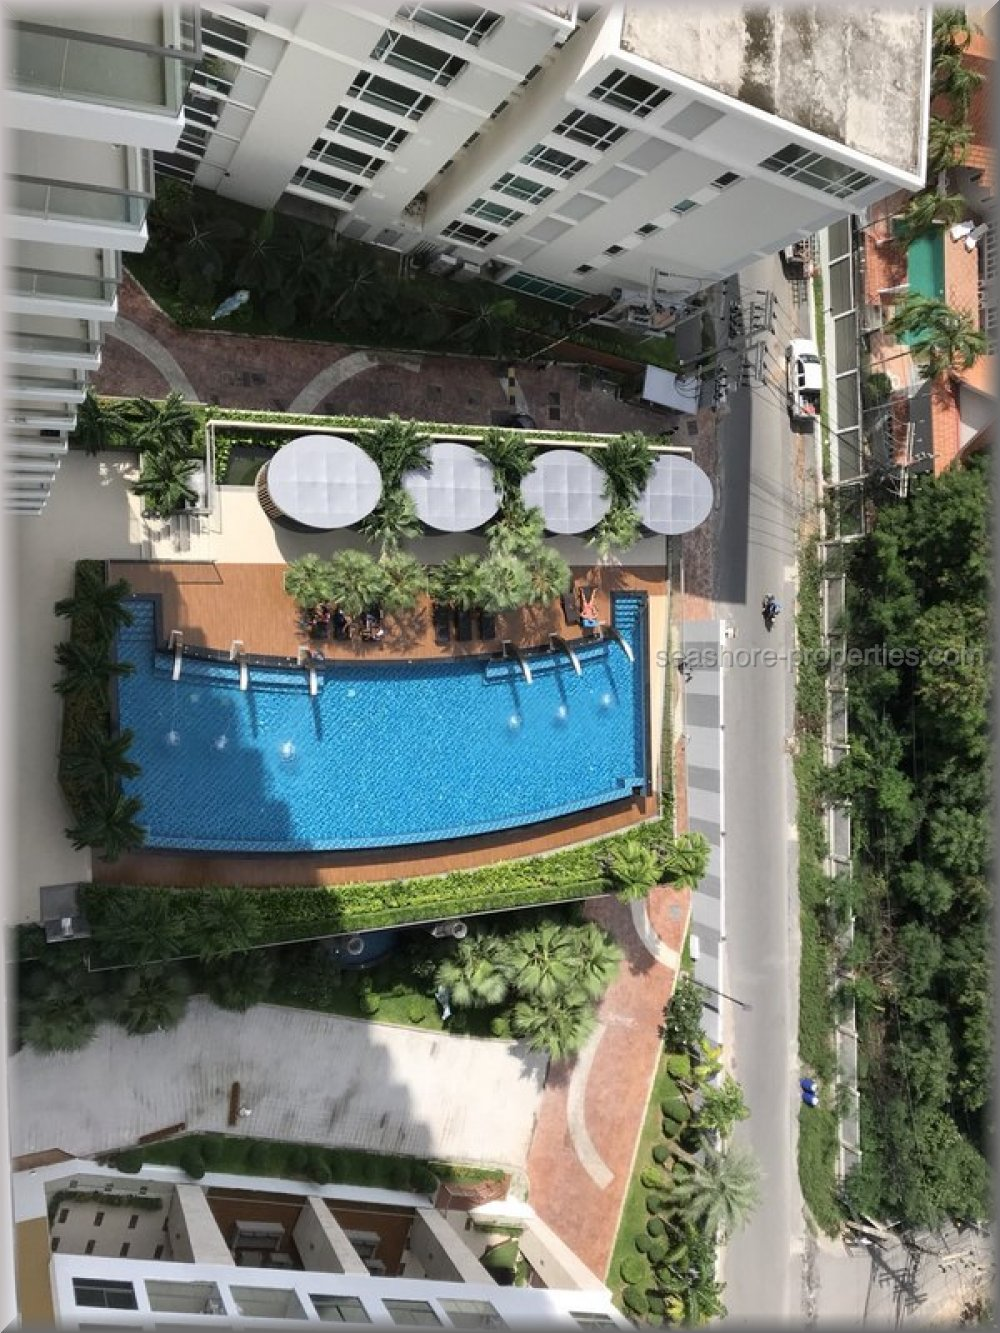 Seashore Properties (Thailand) Co. Ltd. The Peak Towers Condominiums for sale in Pratumnak Pattaya